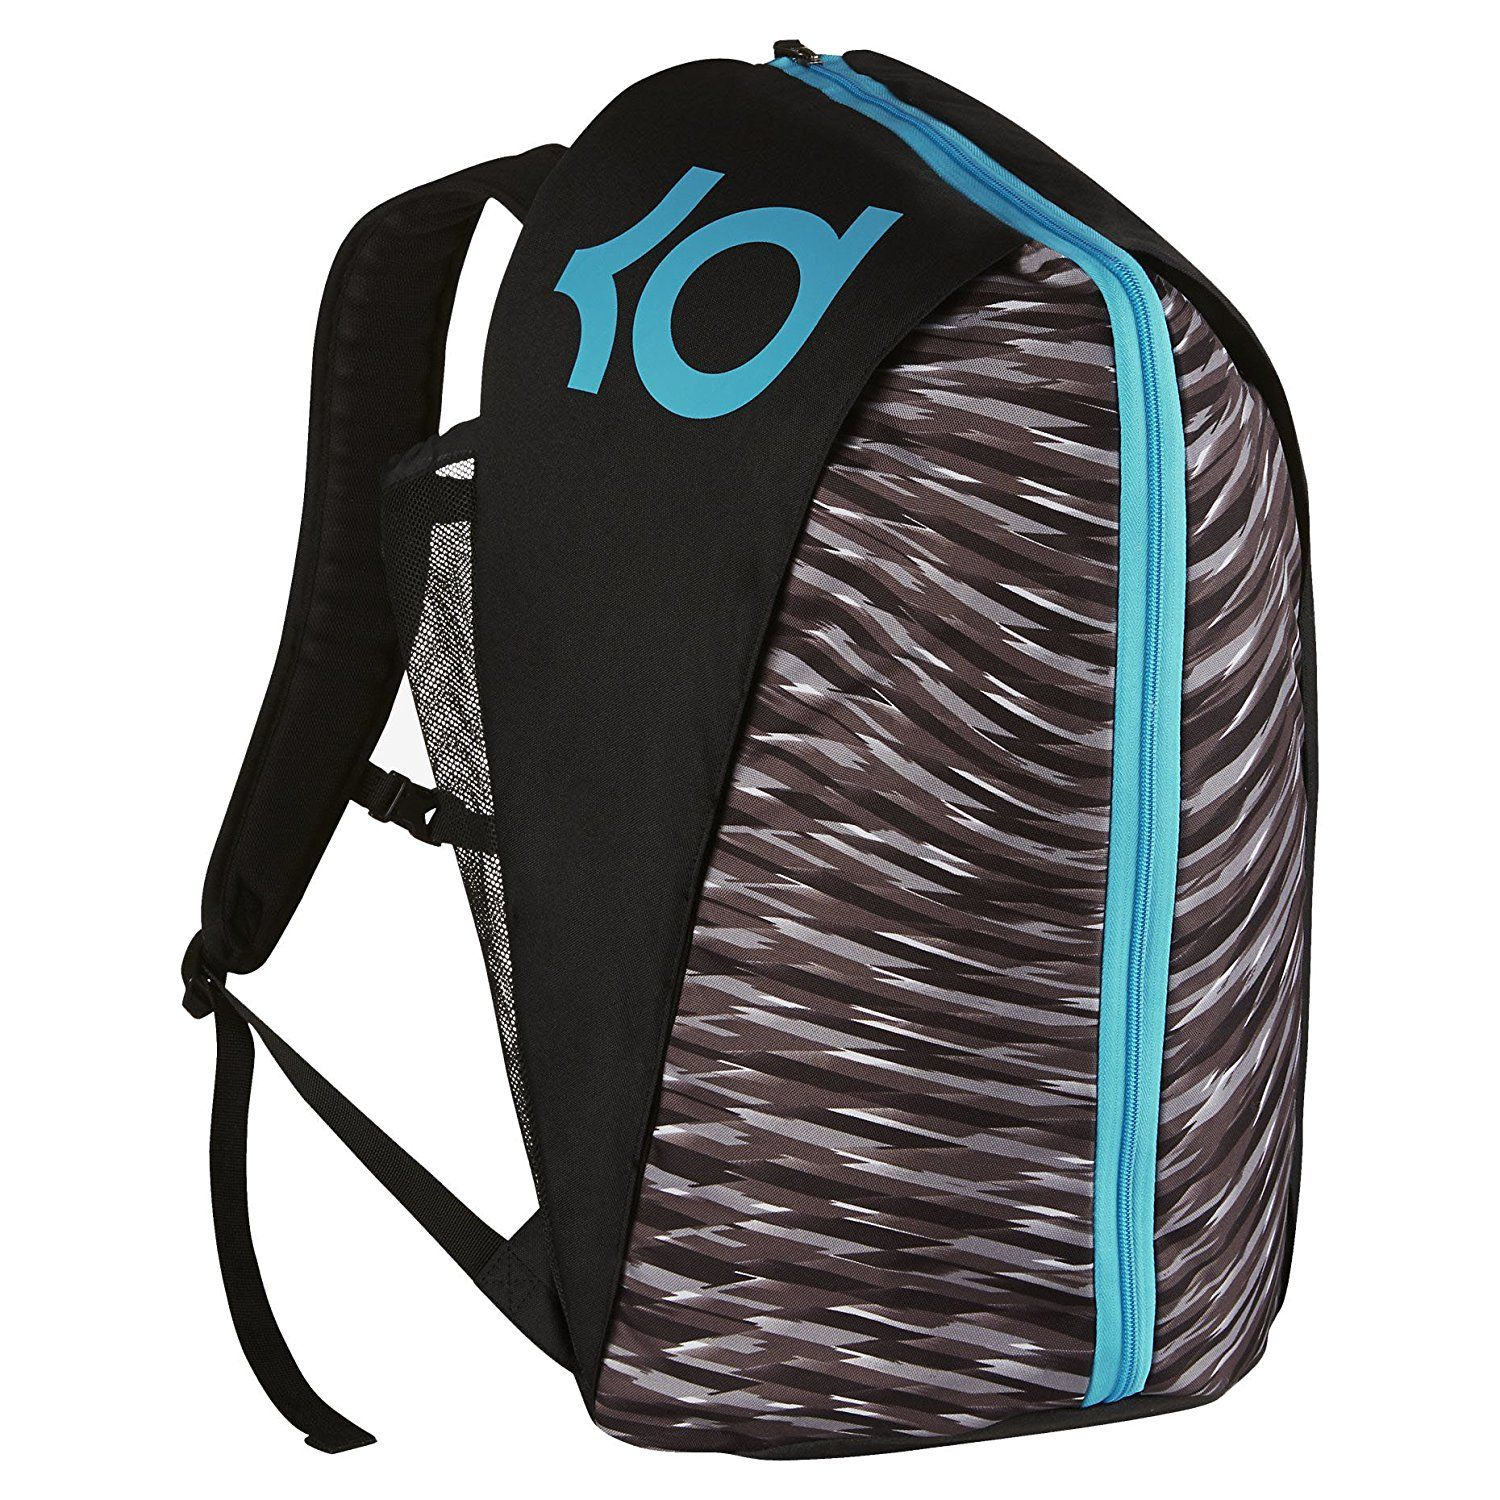 Nike KD Max Air VIII Basketball Backpack     Quickly view this special  product, click the image   Hiking backpack 793a54b073